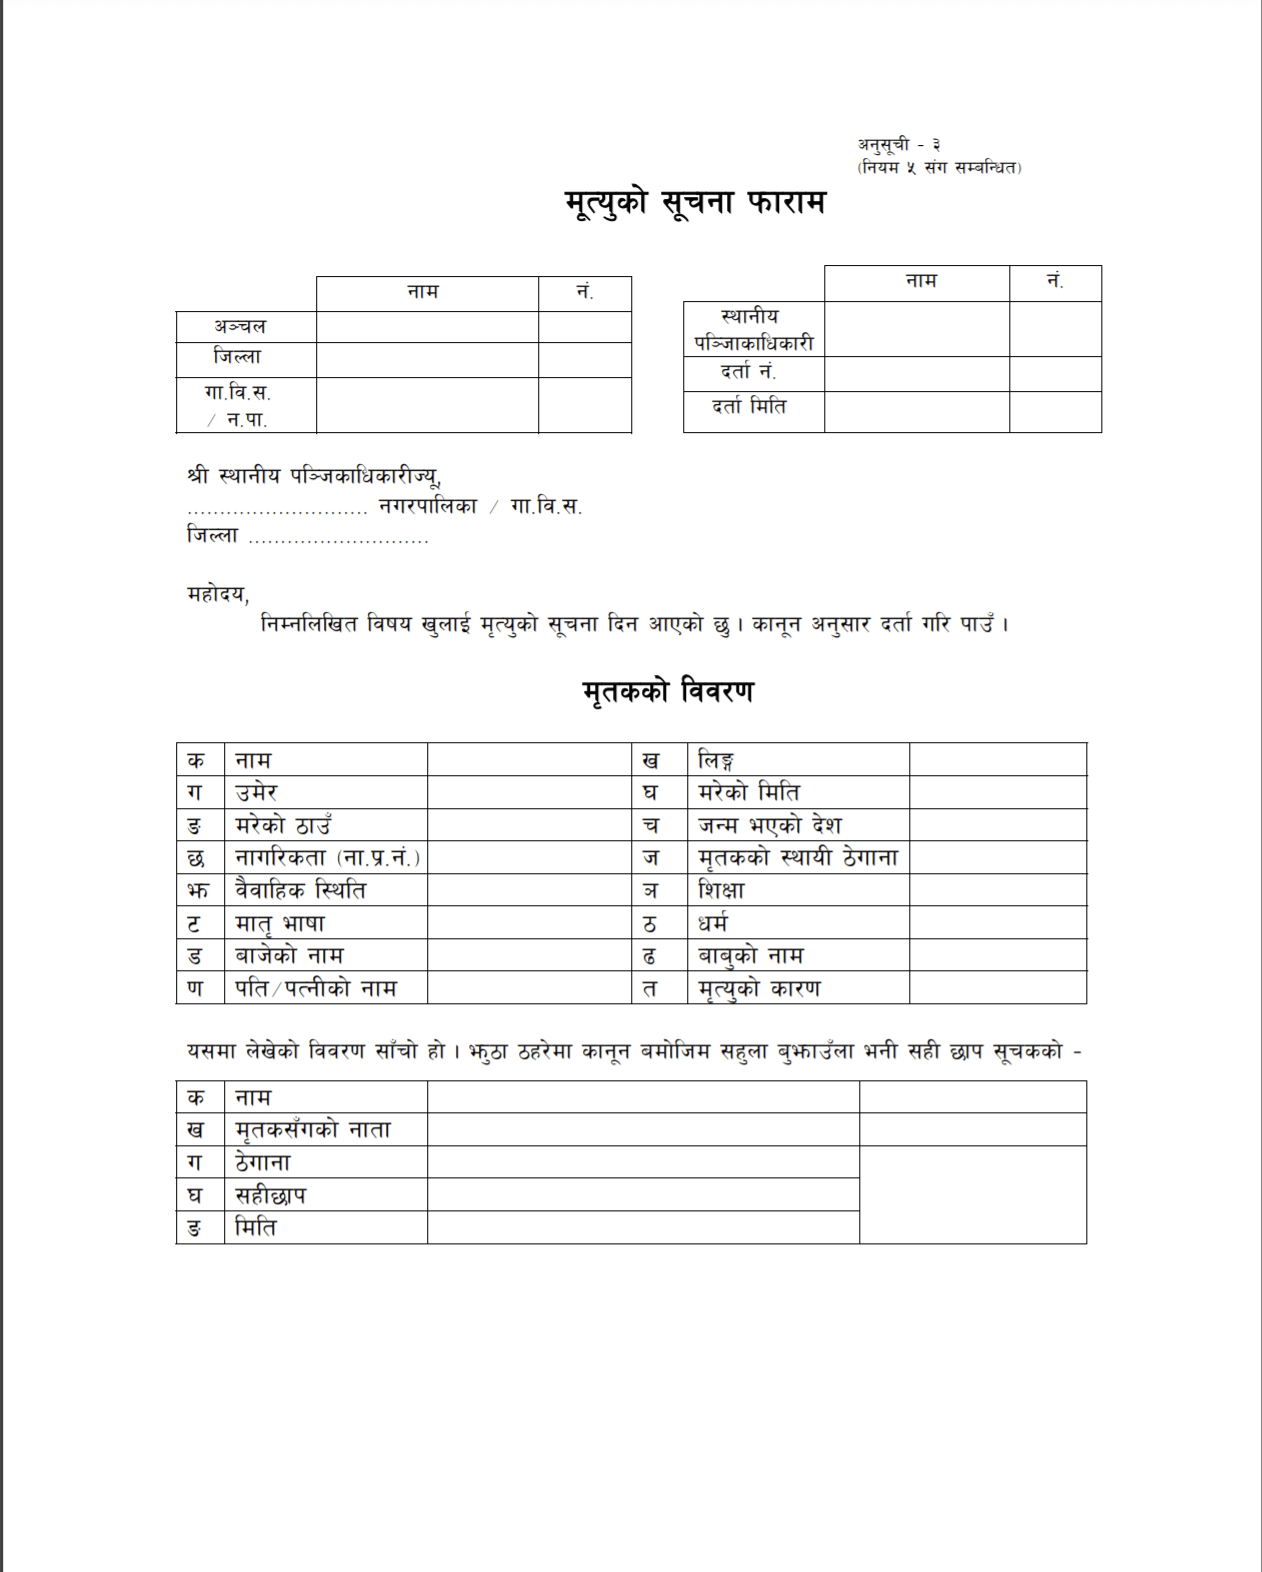 4 Simple Steps on How to Make a Death Certificate in Nepal